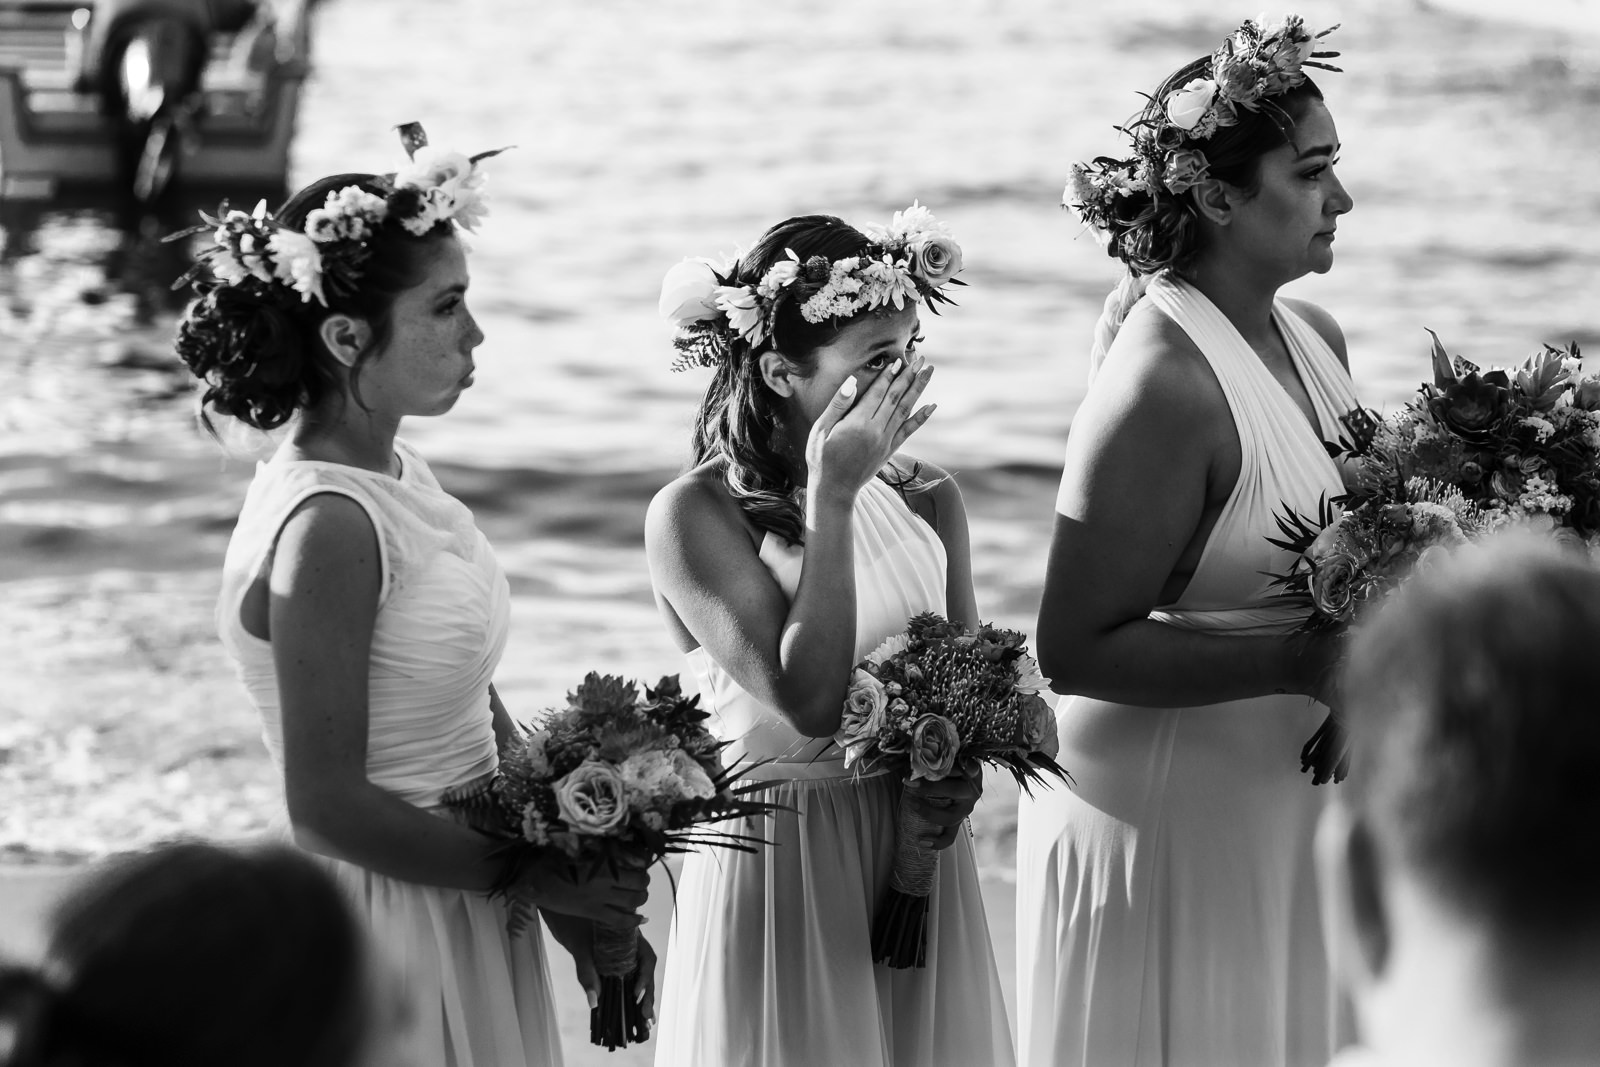 Bridesmaid/daughter crying during the wedding ceremony on the beach at Miramar Yelapa.